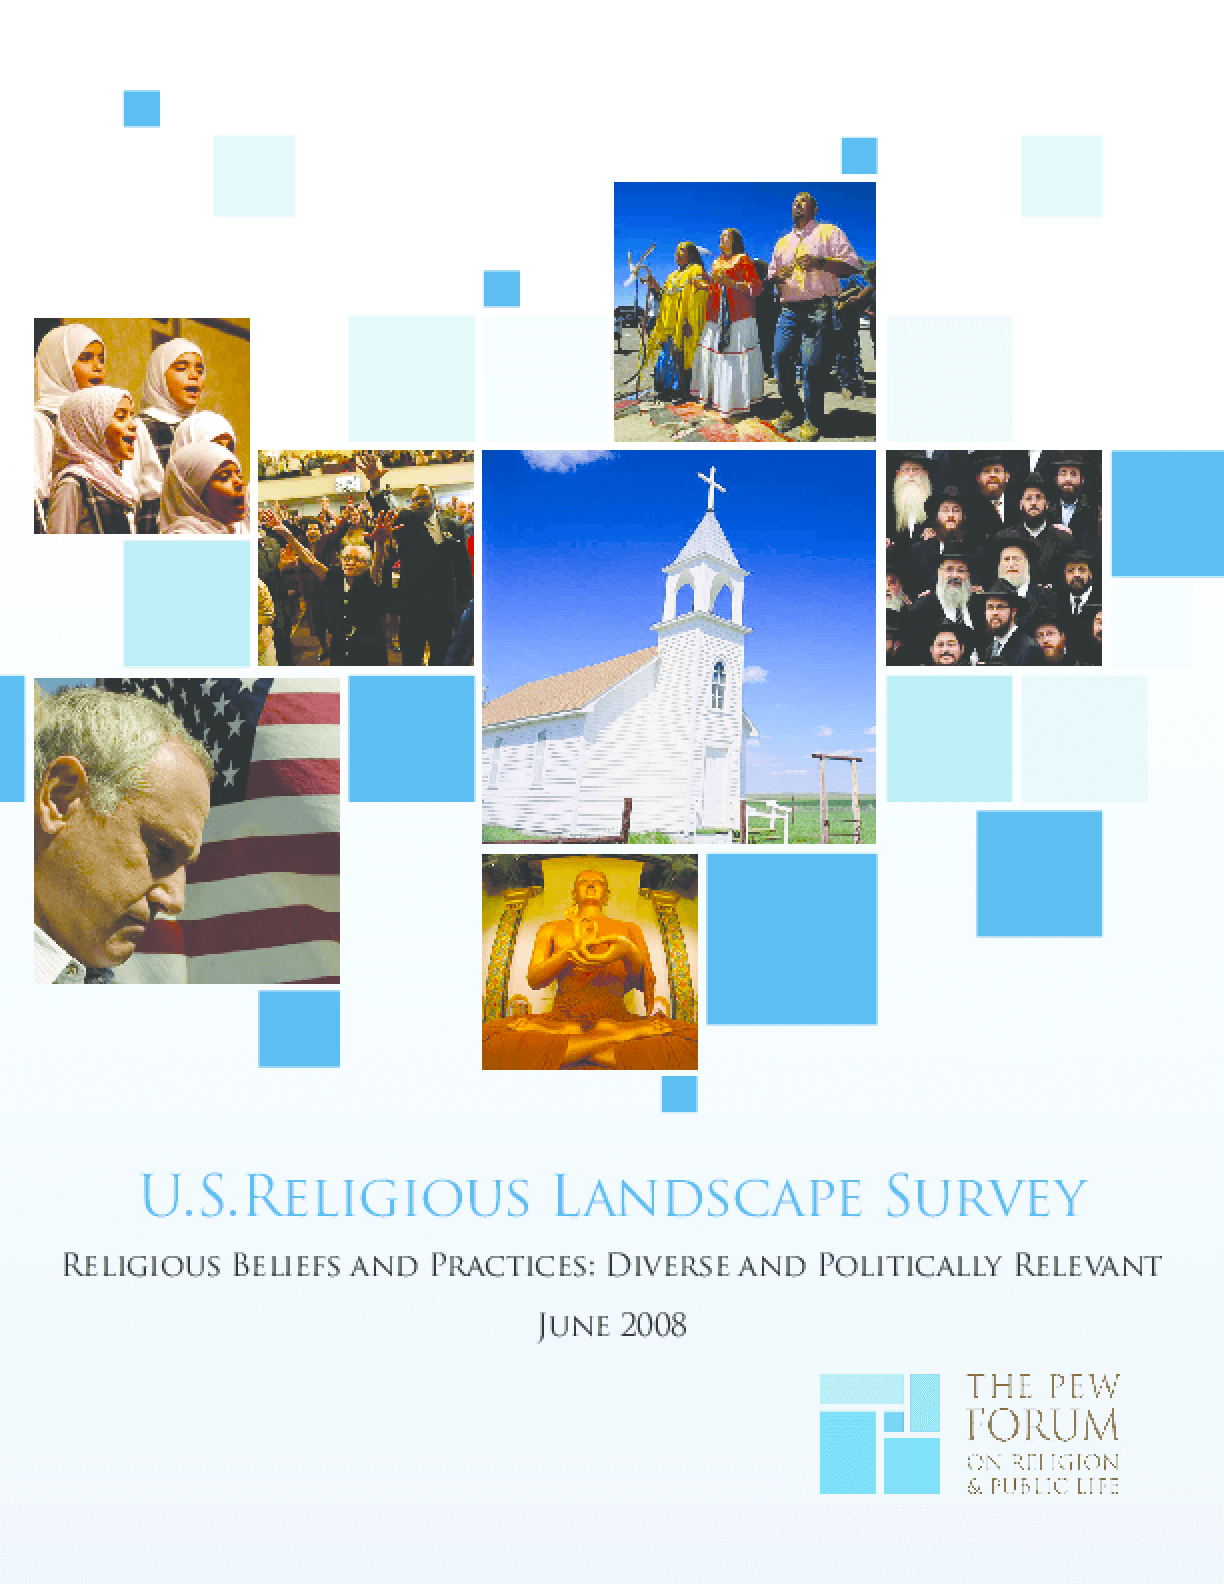 U.S. Religious Landscape Survey: Religious Beliefs and Practices: Diverse and Politically Relevant